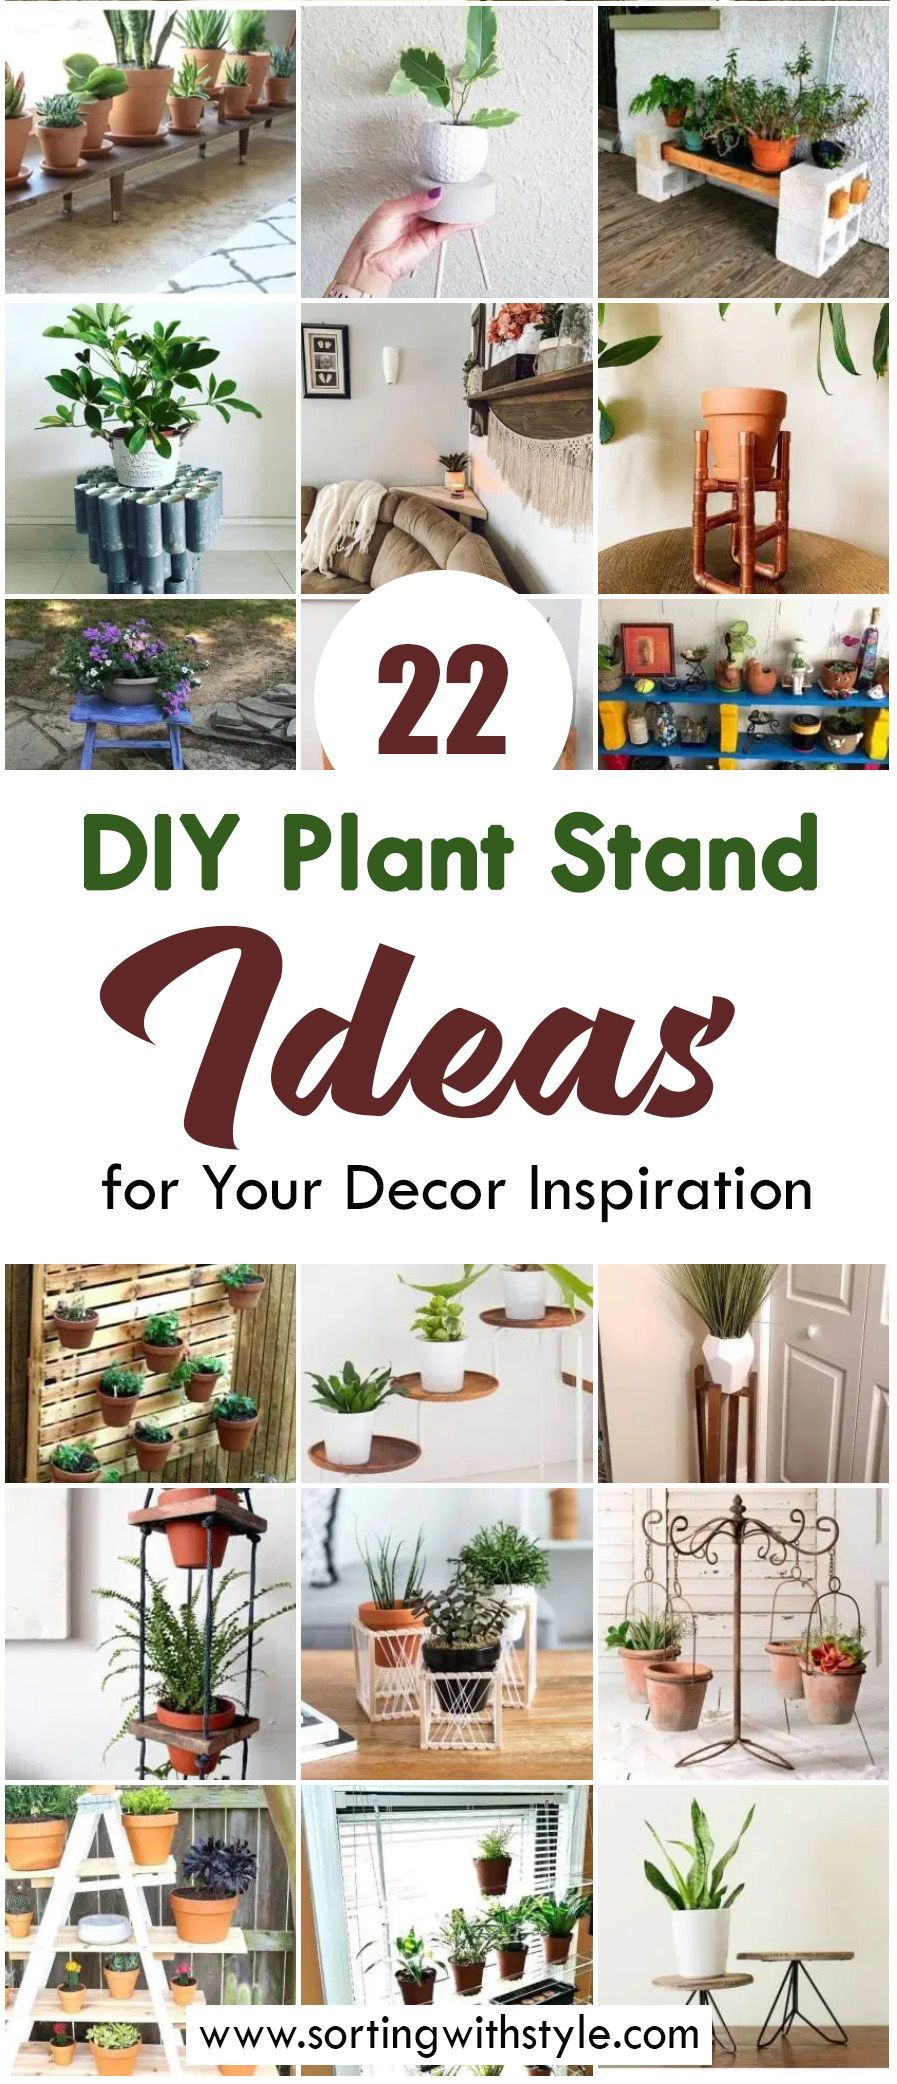 22 Easy & Creative DIY Plant Stand Ideas for Your Decor Inspiration #diyplantstand Simple, easy and creative DIY plant stand ideas for indoor and outdoor from woods, pipes and other materials // Upcycled DIY plant stands. Choose you favorite! #diy #plantstands #diyhomedecor #plants #diyplantstand